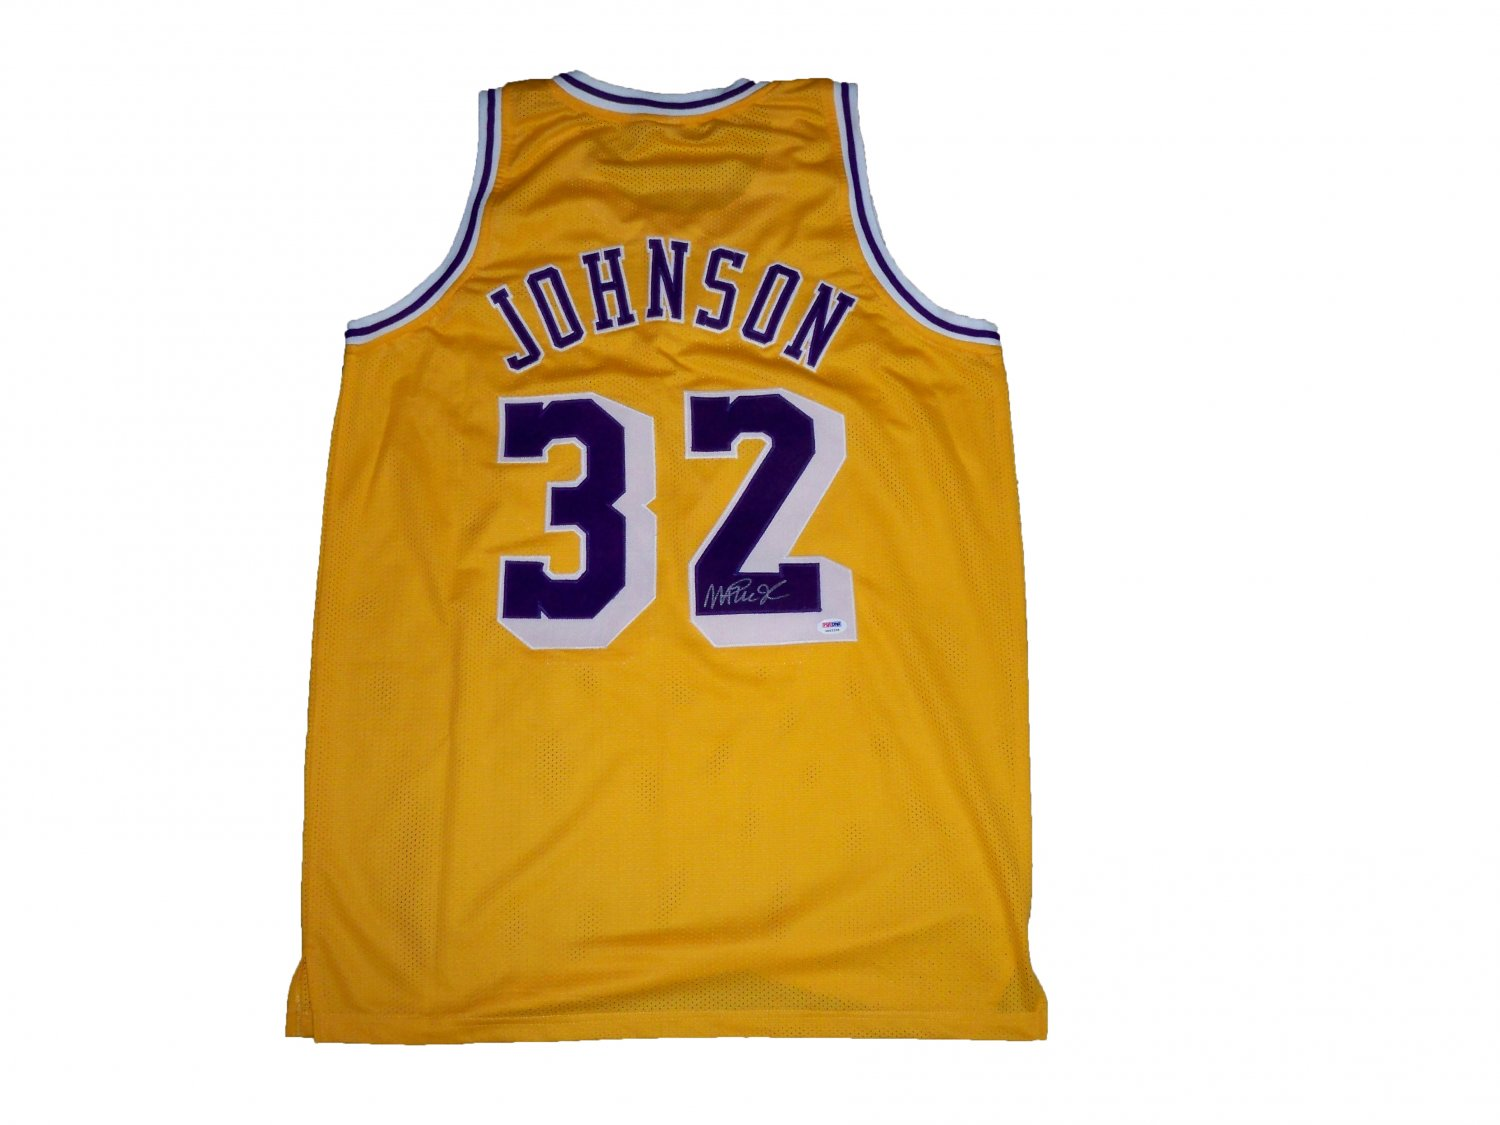 Magic Johnson Signed Lakers Jersey (PSA/DNA)